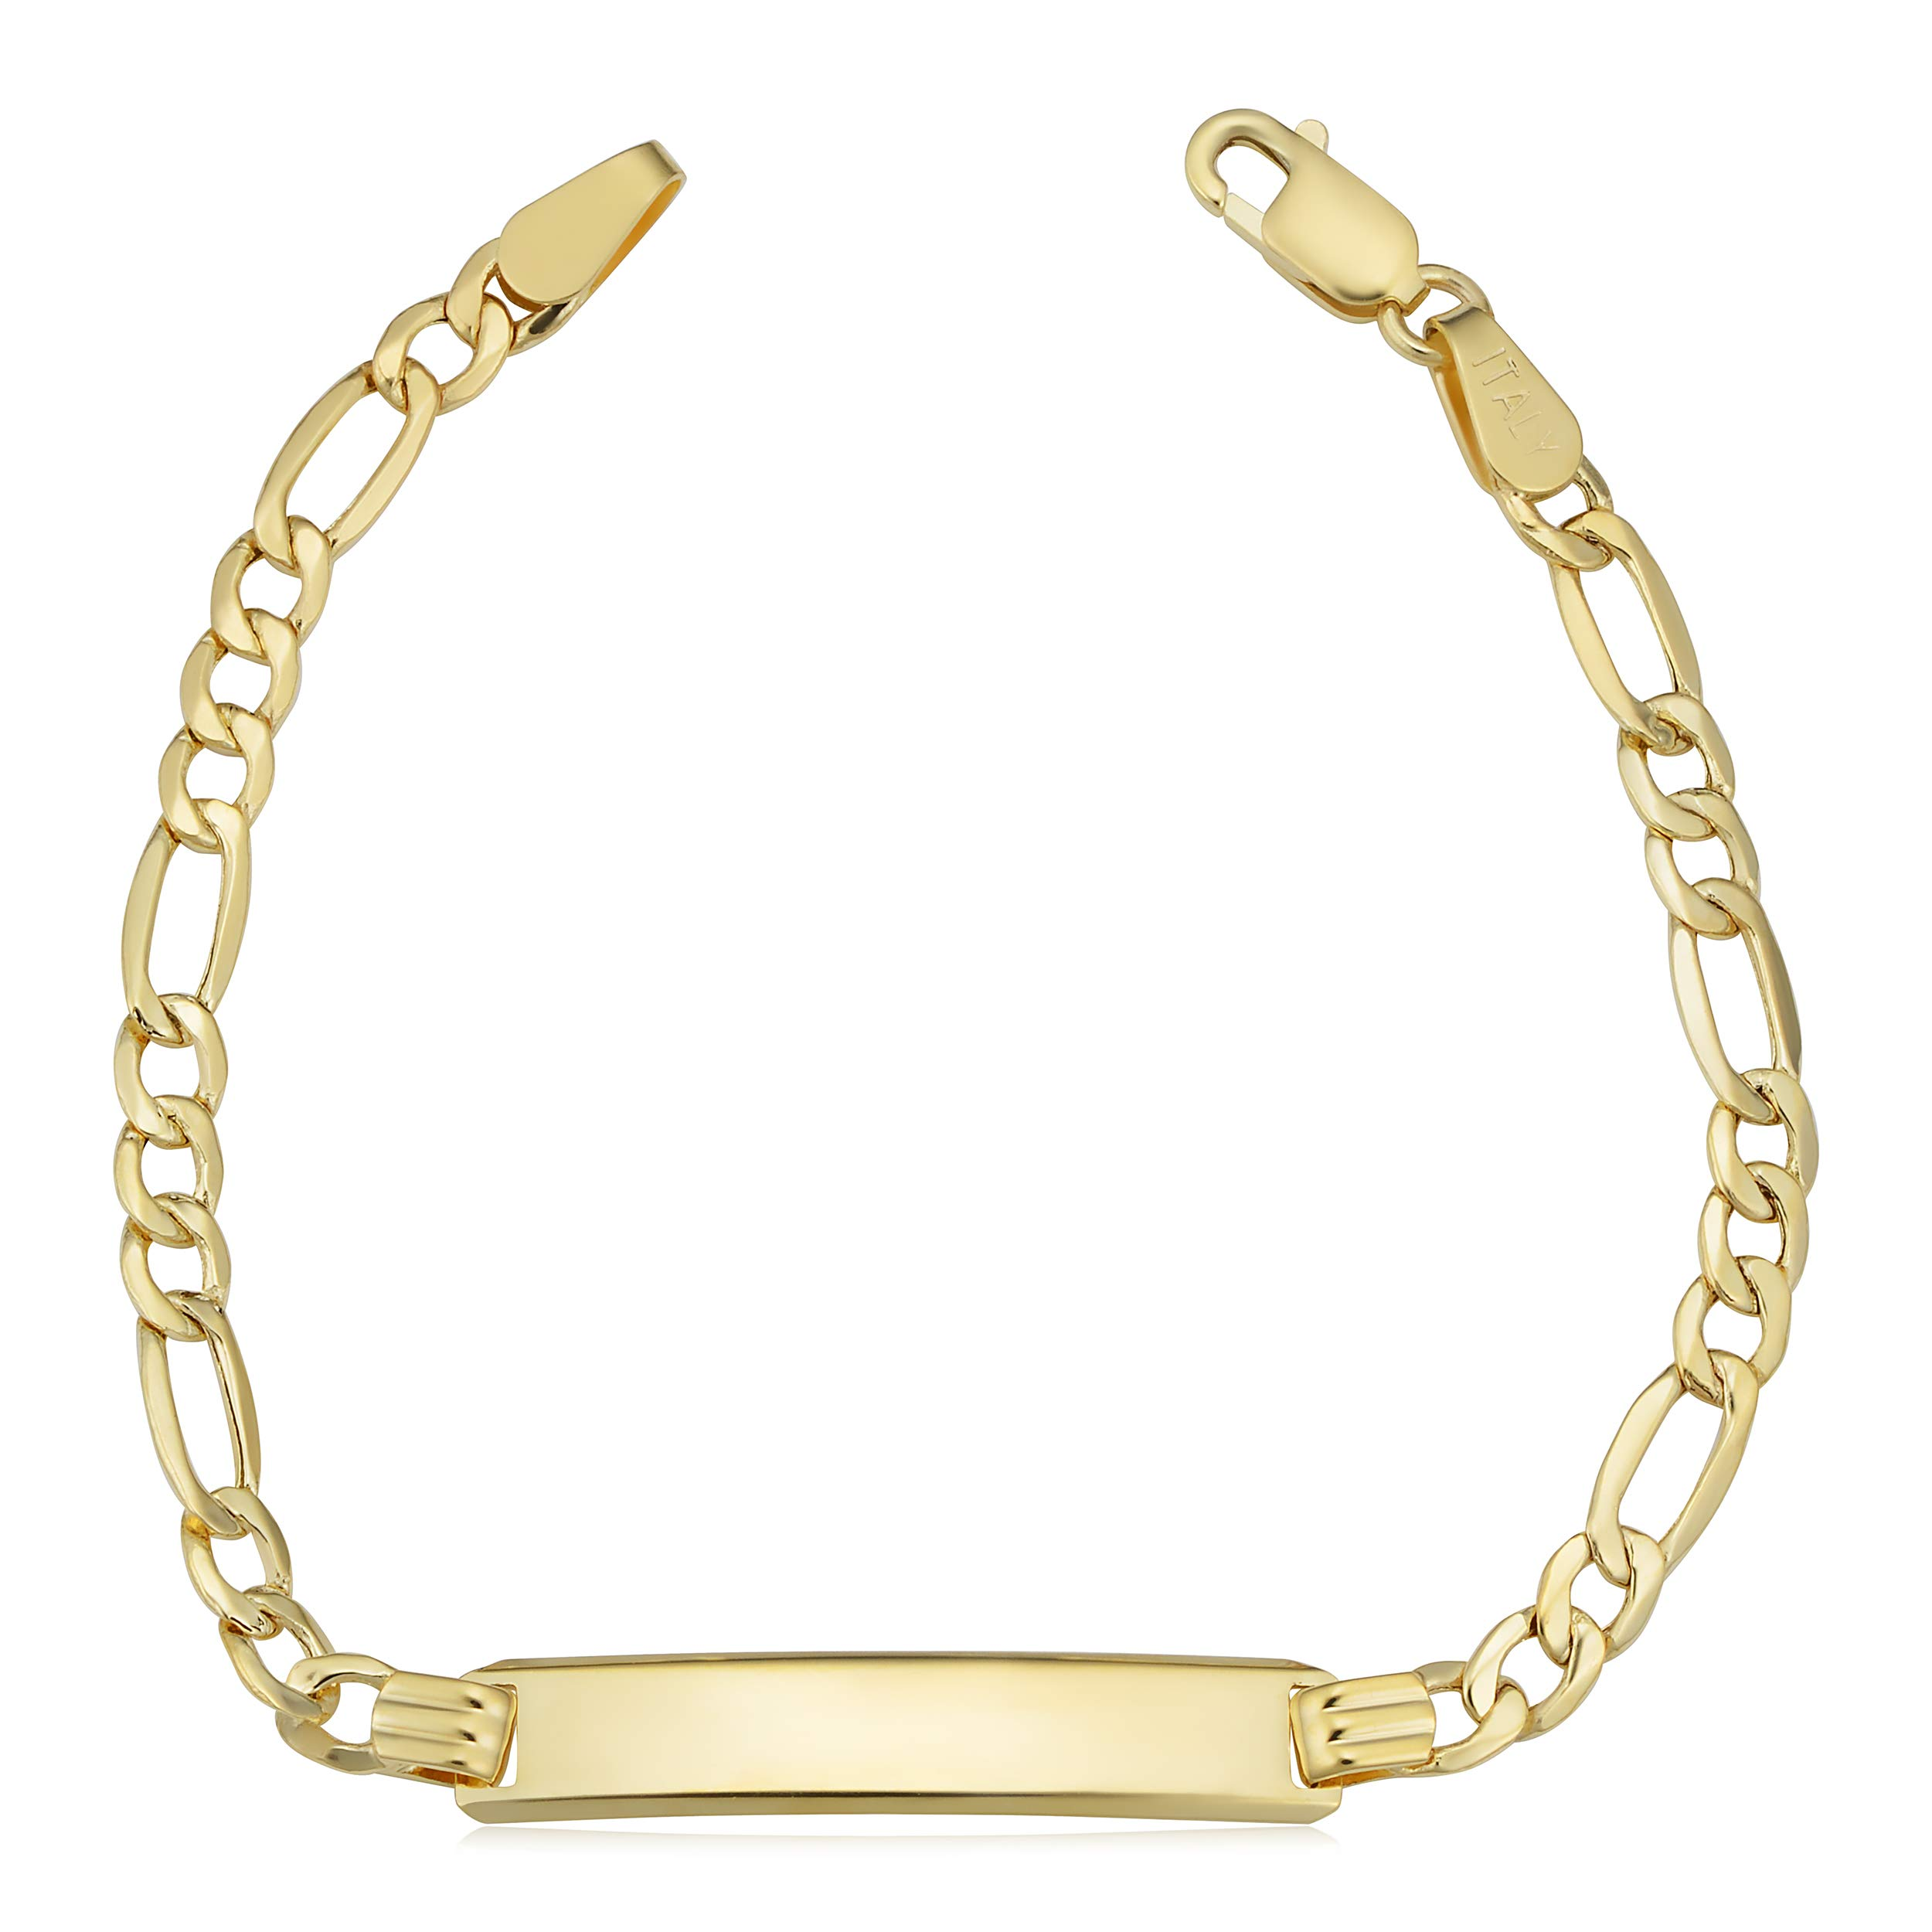 Kooljewelry 14k Yellow Gold High Polish Figaro ID Bracelet (5.5 inch) by Kooljewelry